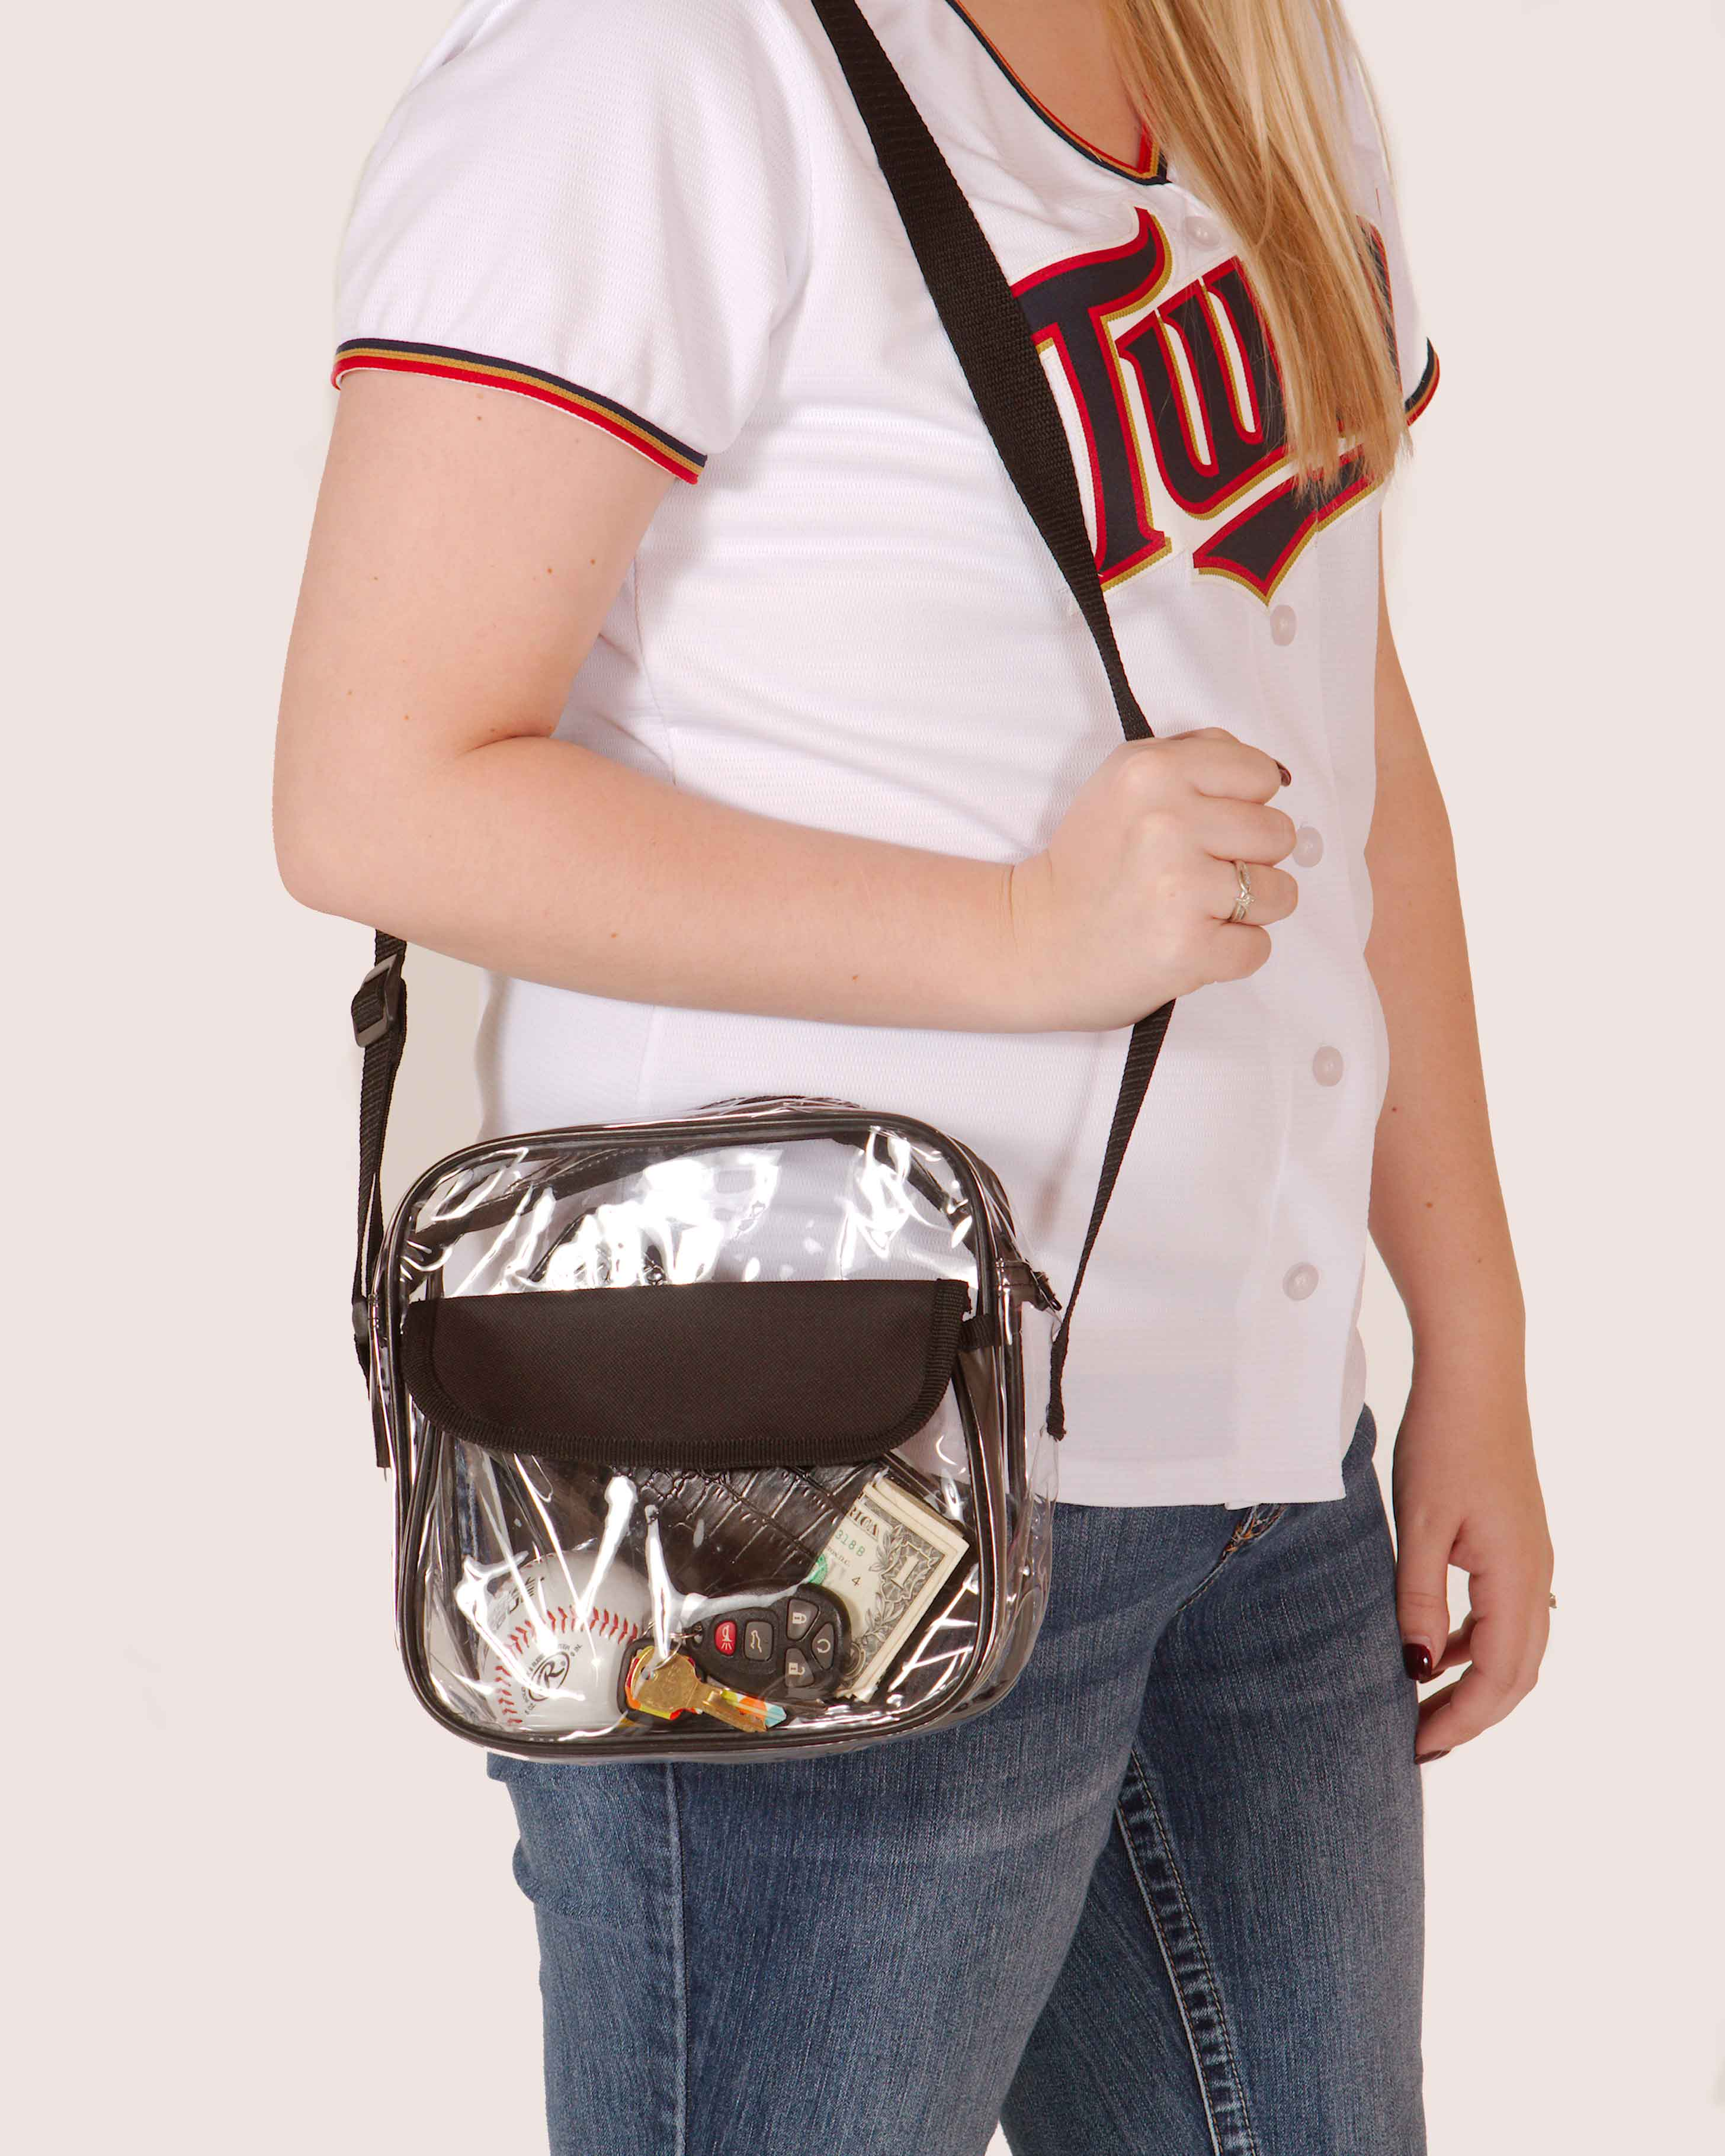 Clear-Purse-NFL-Stadium-Approved-Bag-with-Zipper-and-Shoulder-Strap thumbnail 30